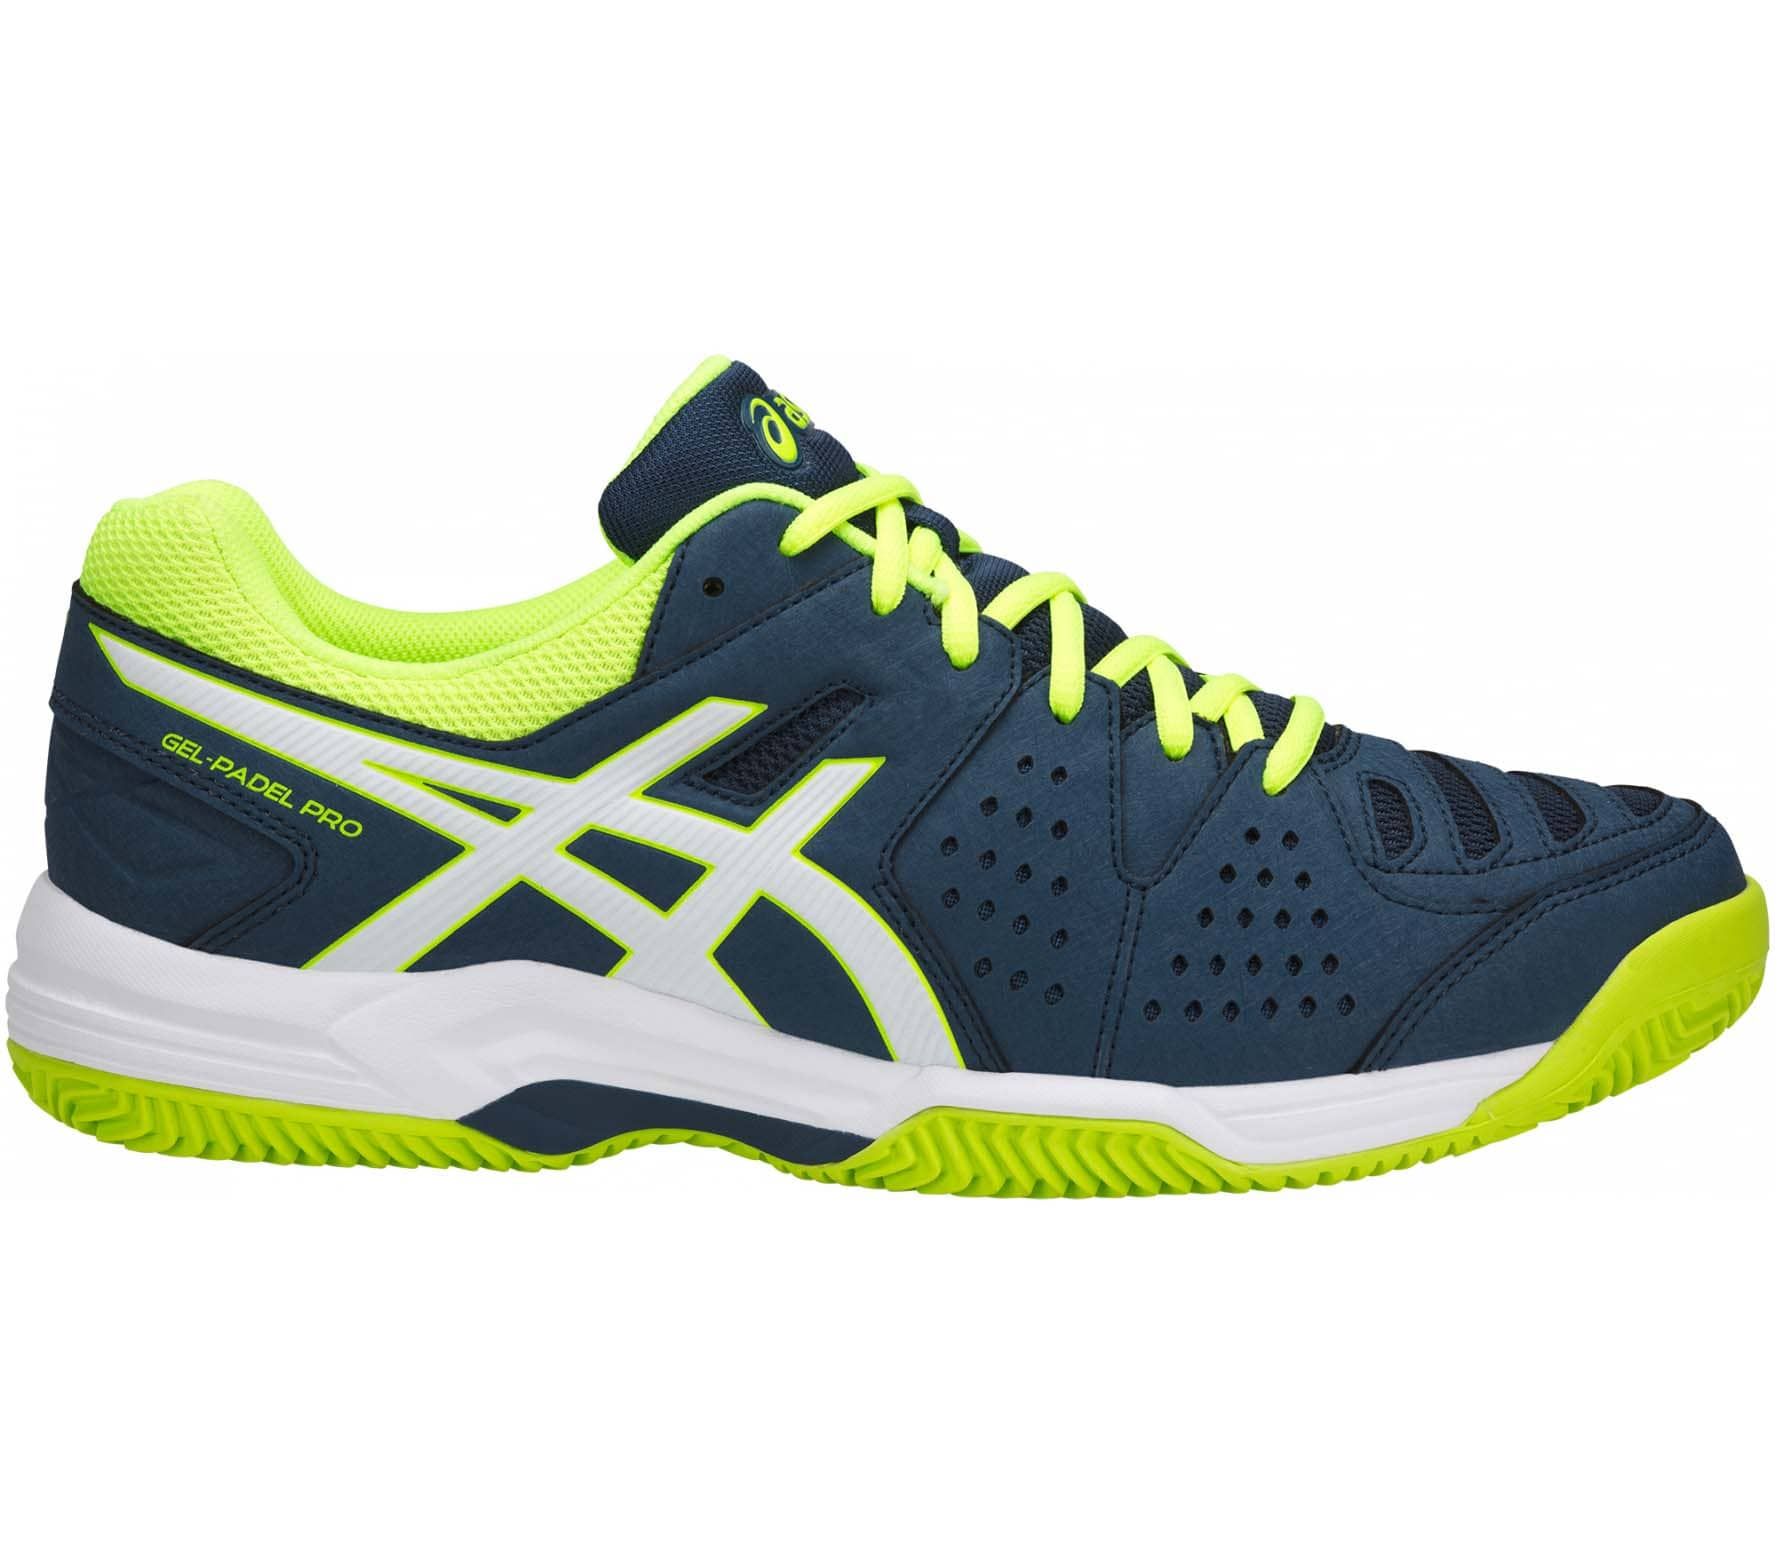 Gel-Padel Pro 3 Sg Men Tennis Shoes